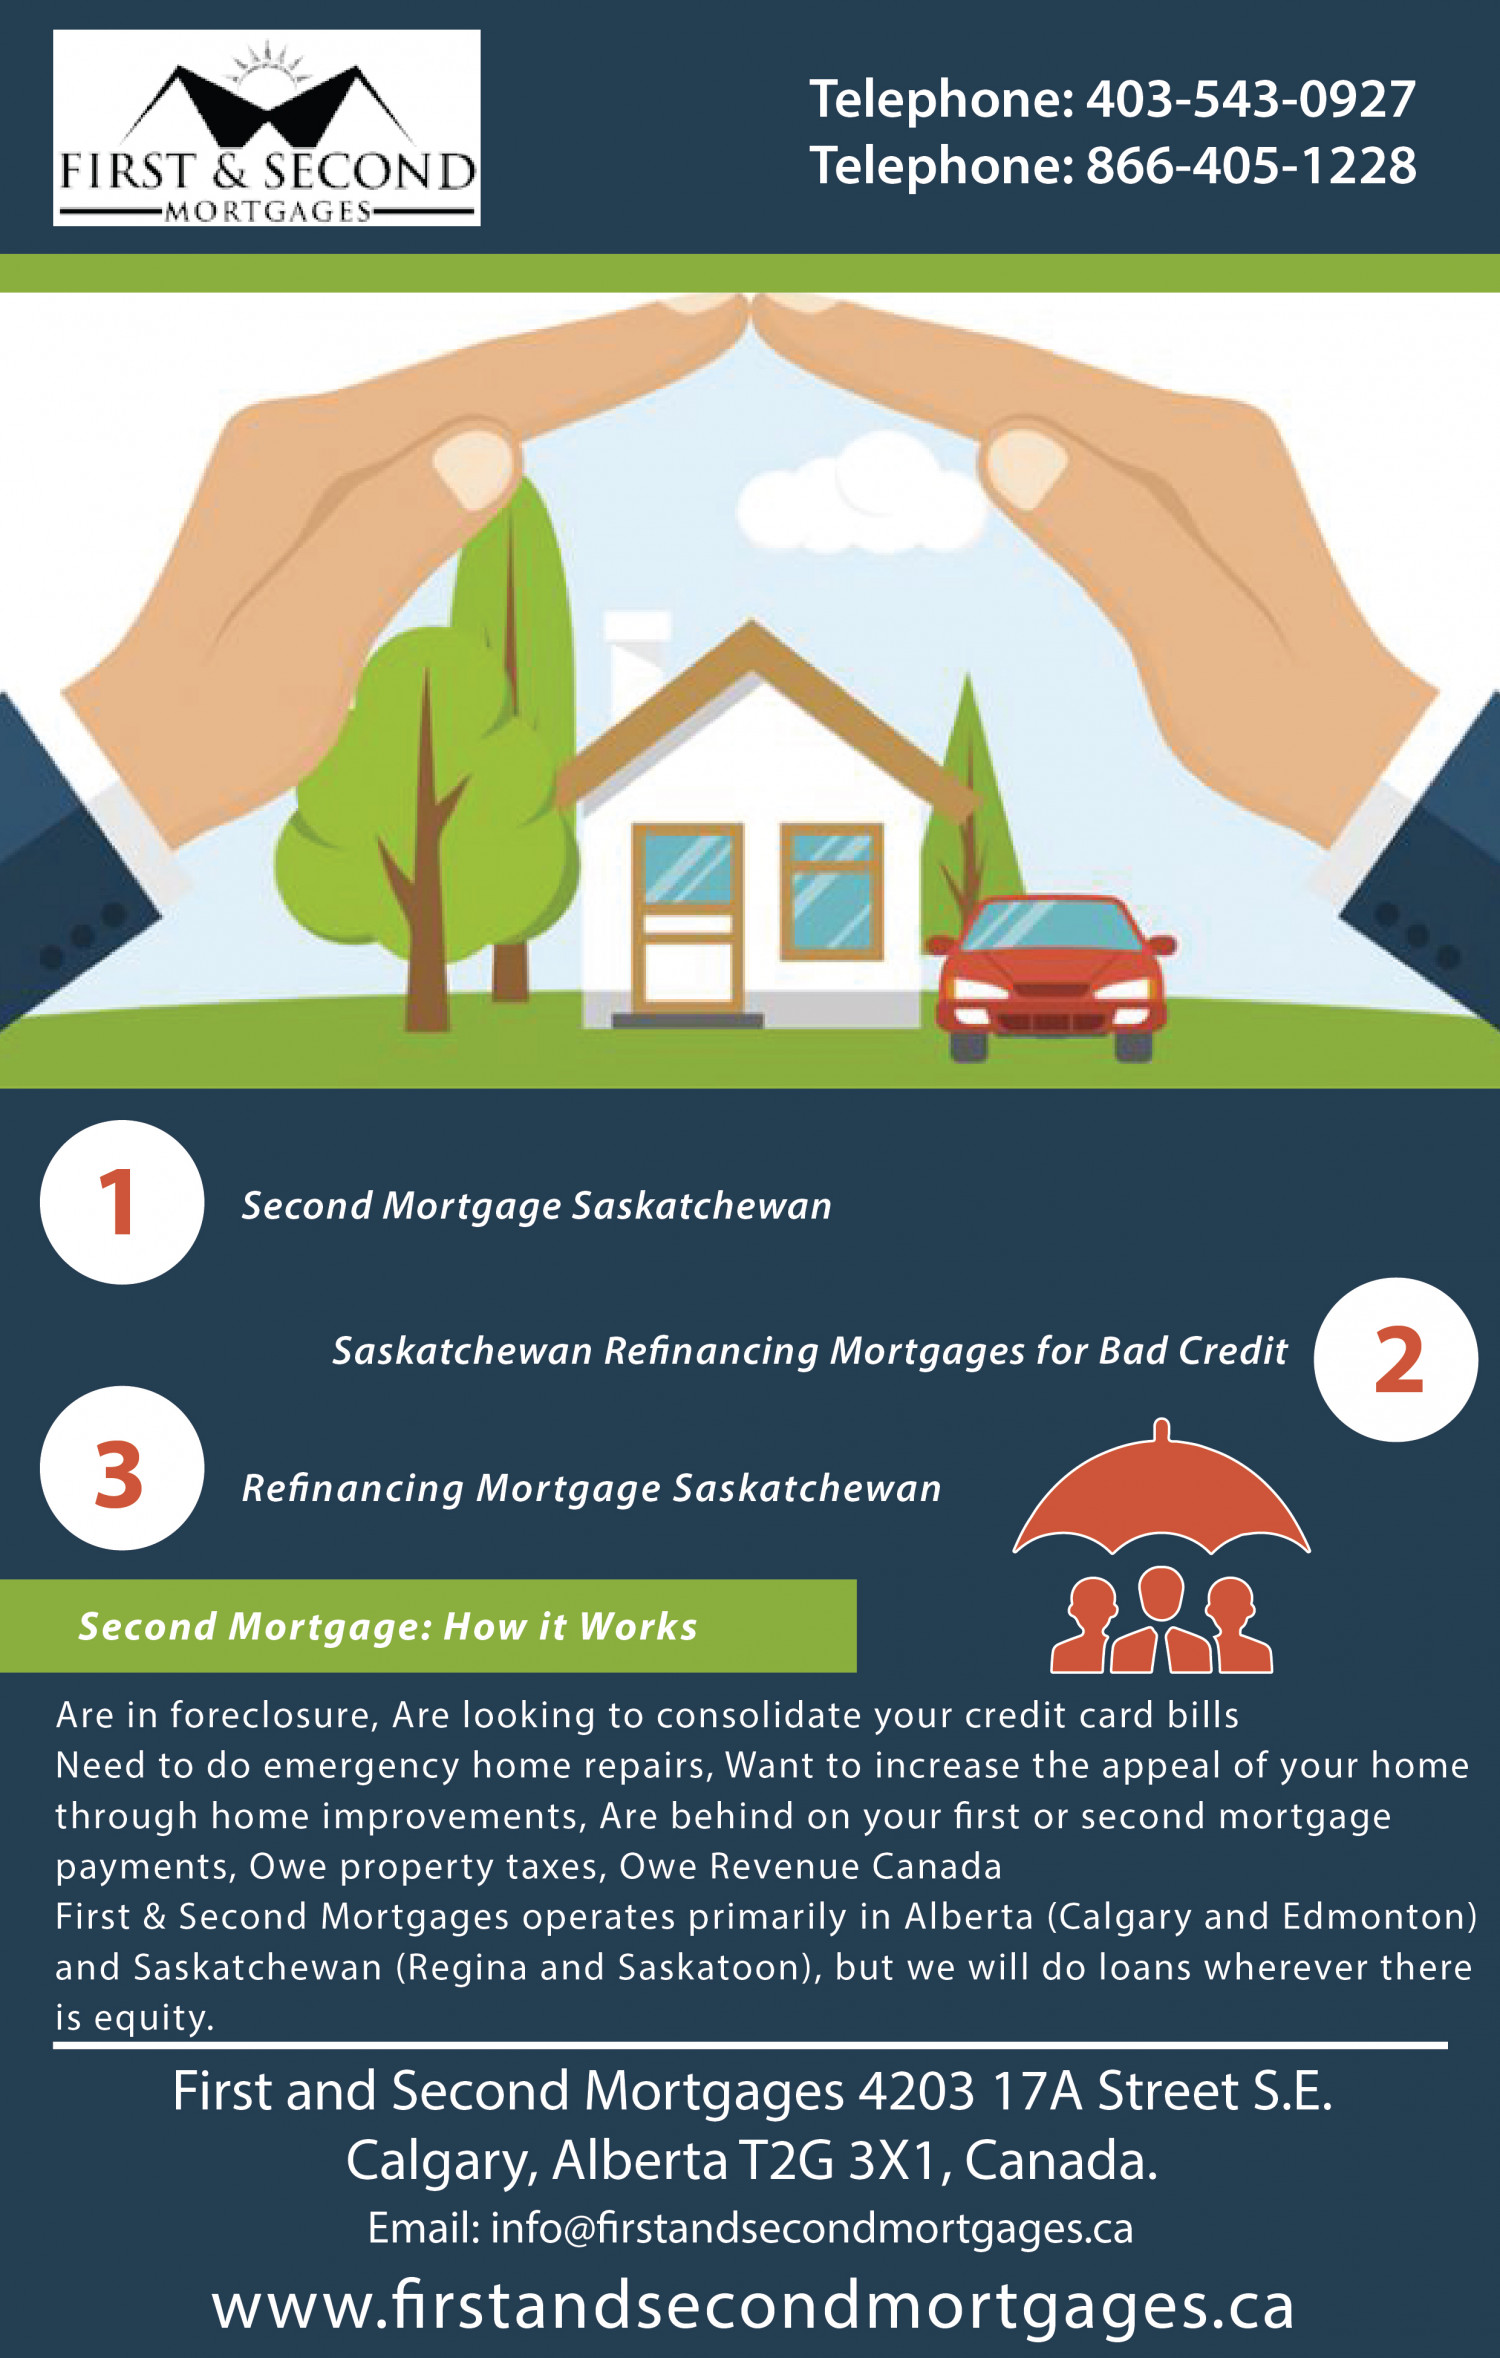 Saskatchewan Refinance Mortgages for Bad Credit Infographic